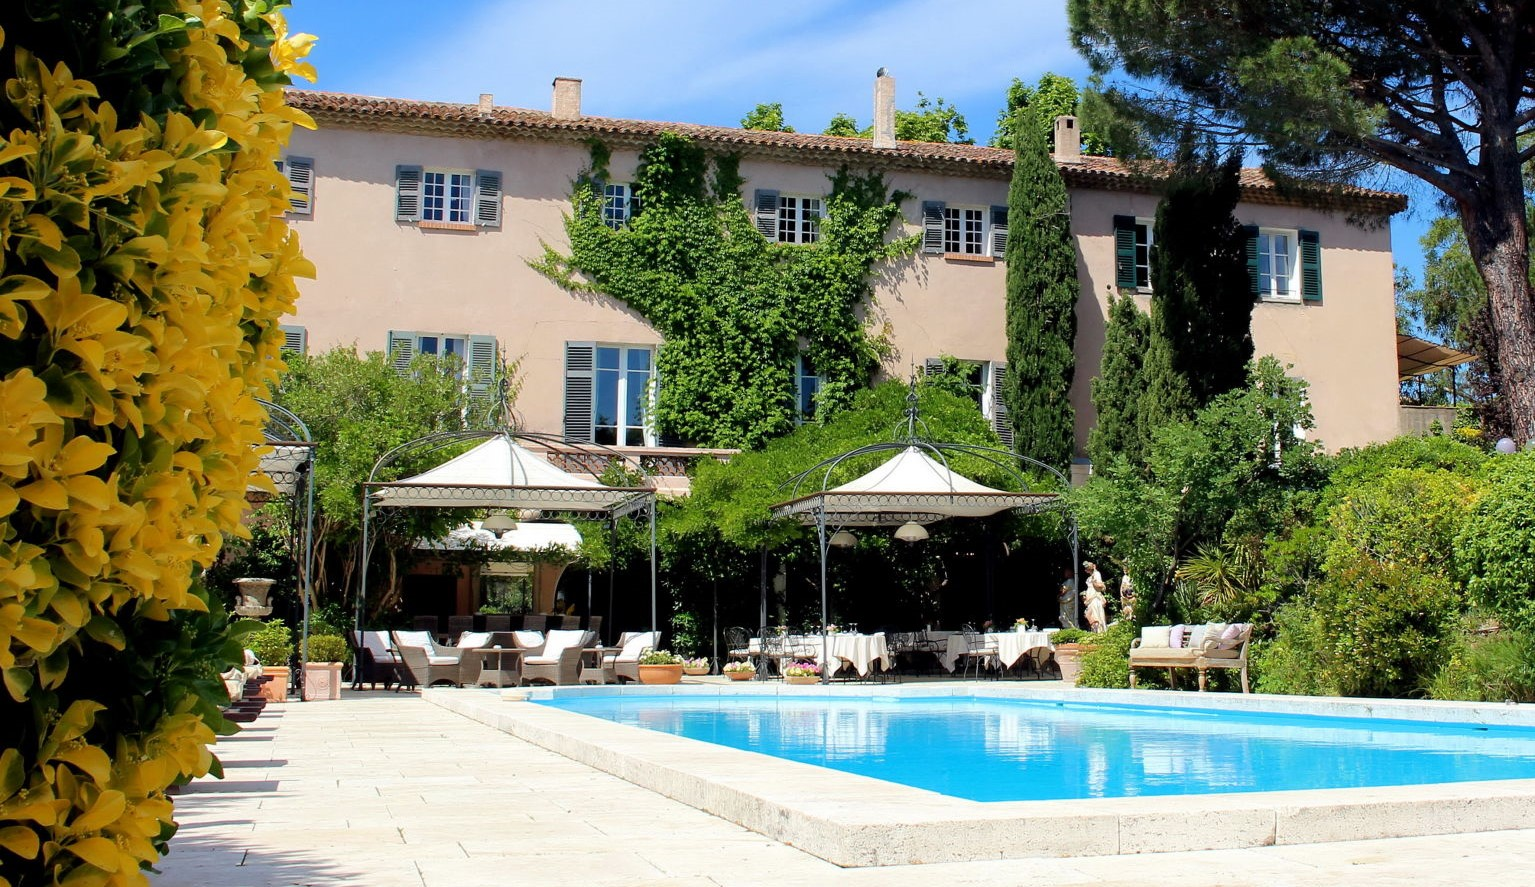 Luxury boutique hotel Mas de Chastelas 5 stars Saint-Tropez France pool